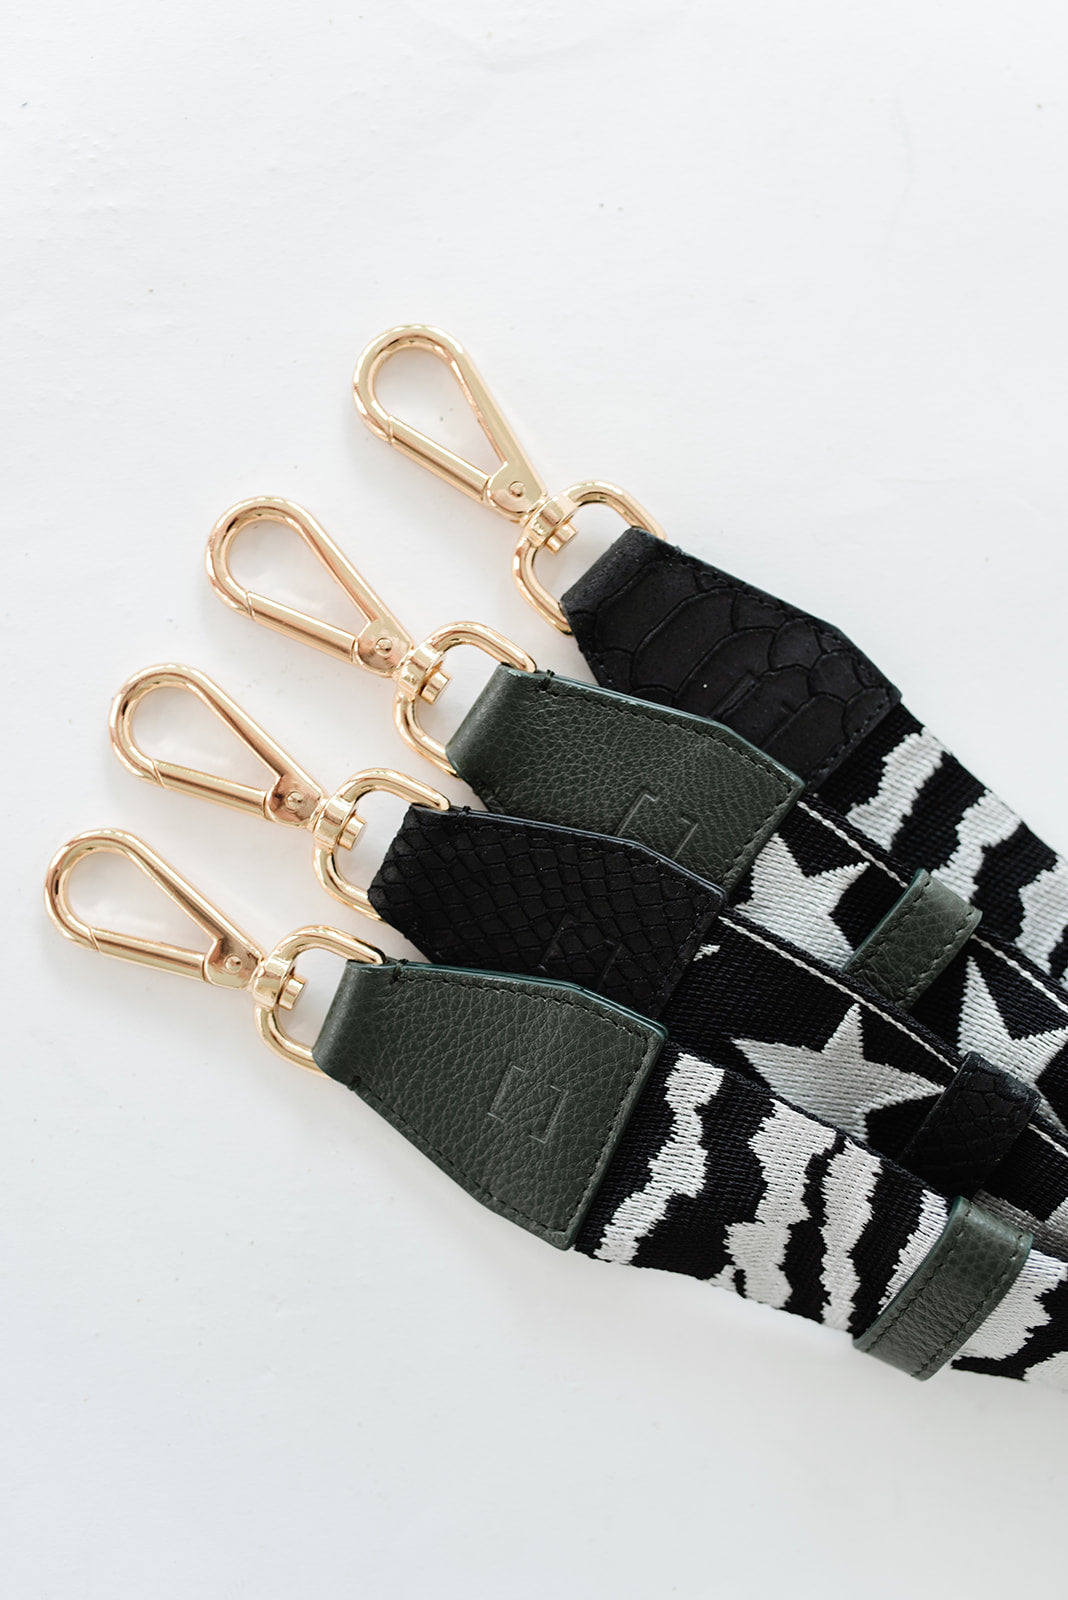 Evviva Adjustable Straps